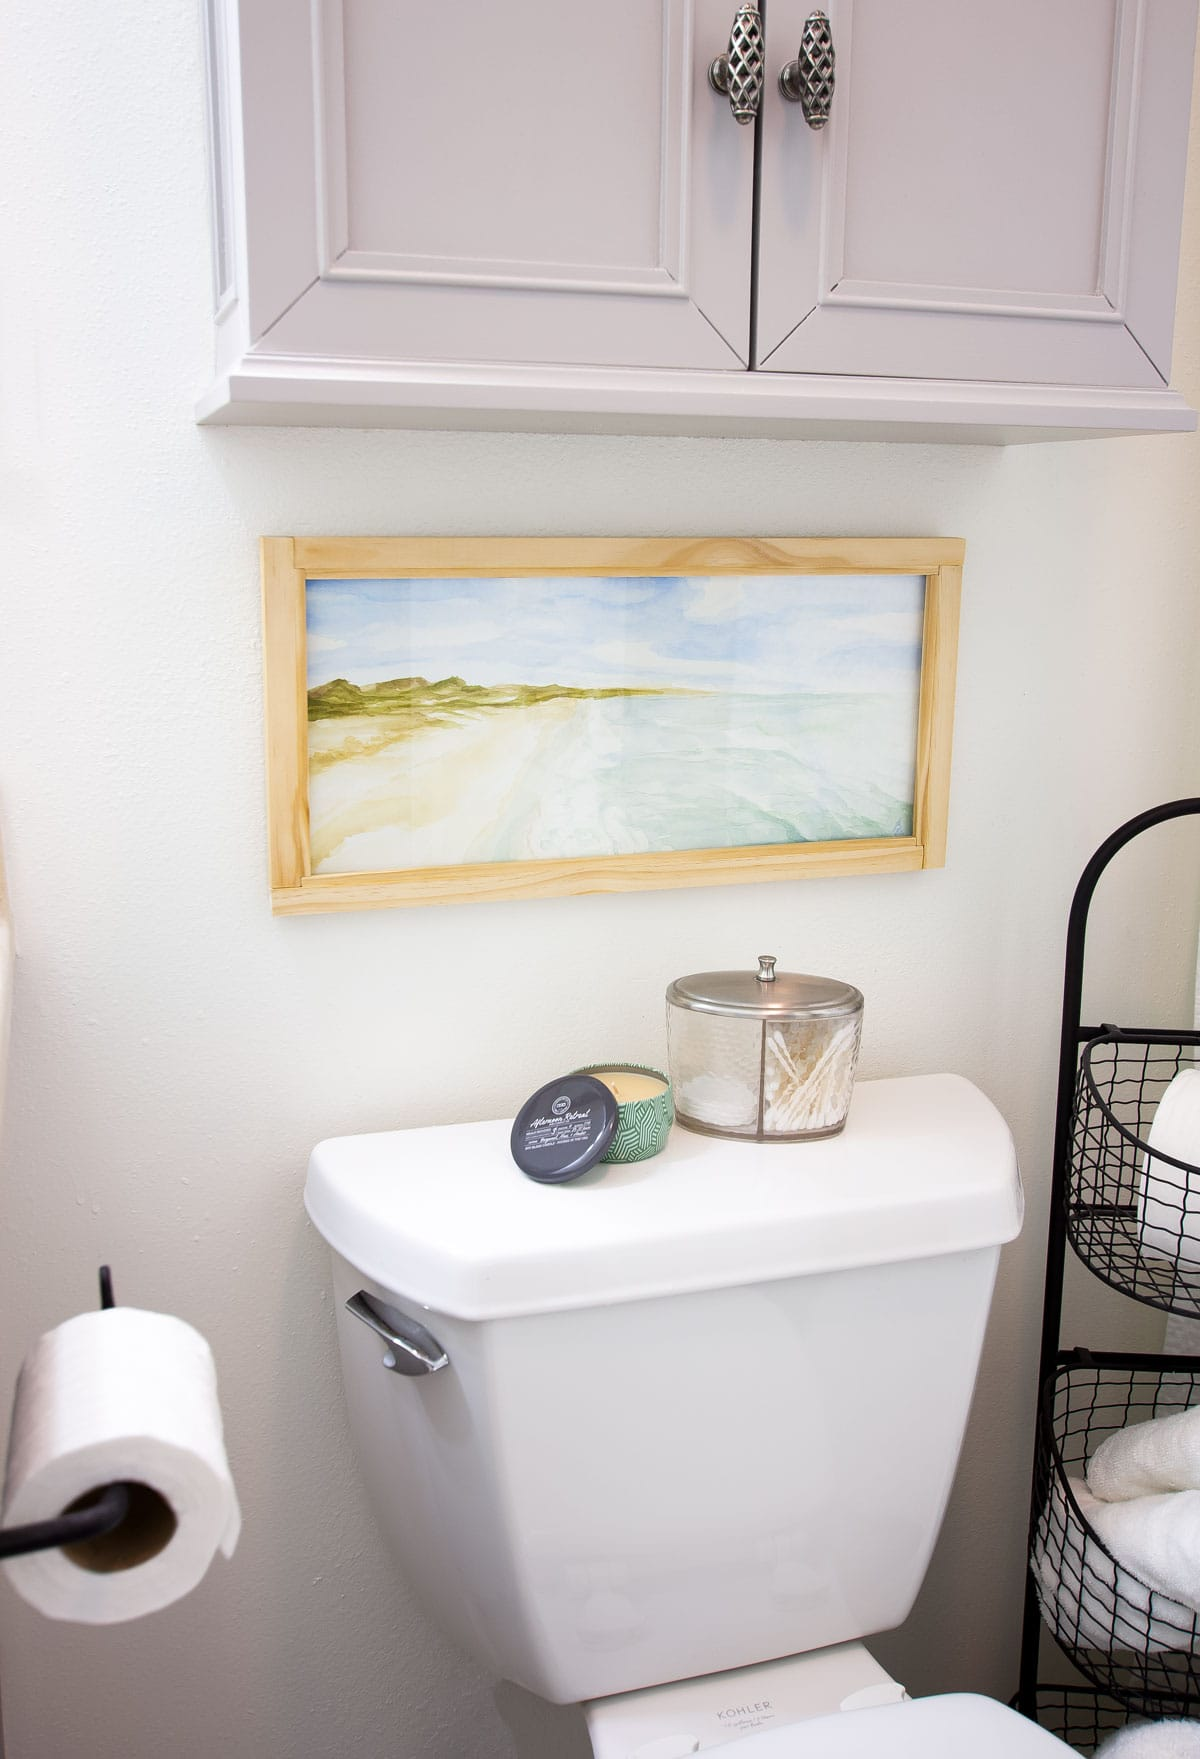 watercolor painting above toilet in bathroom with other bathroom items